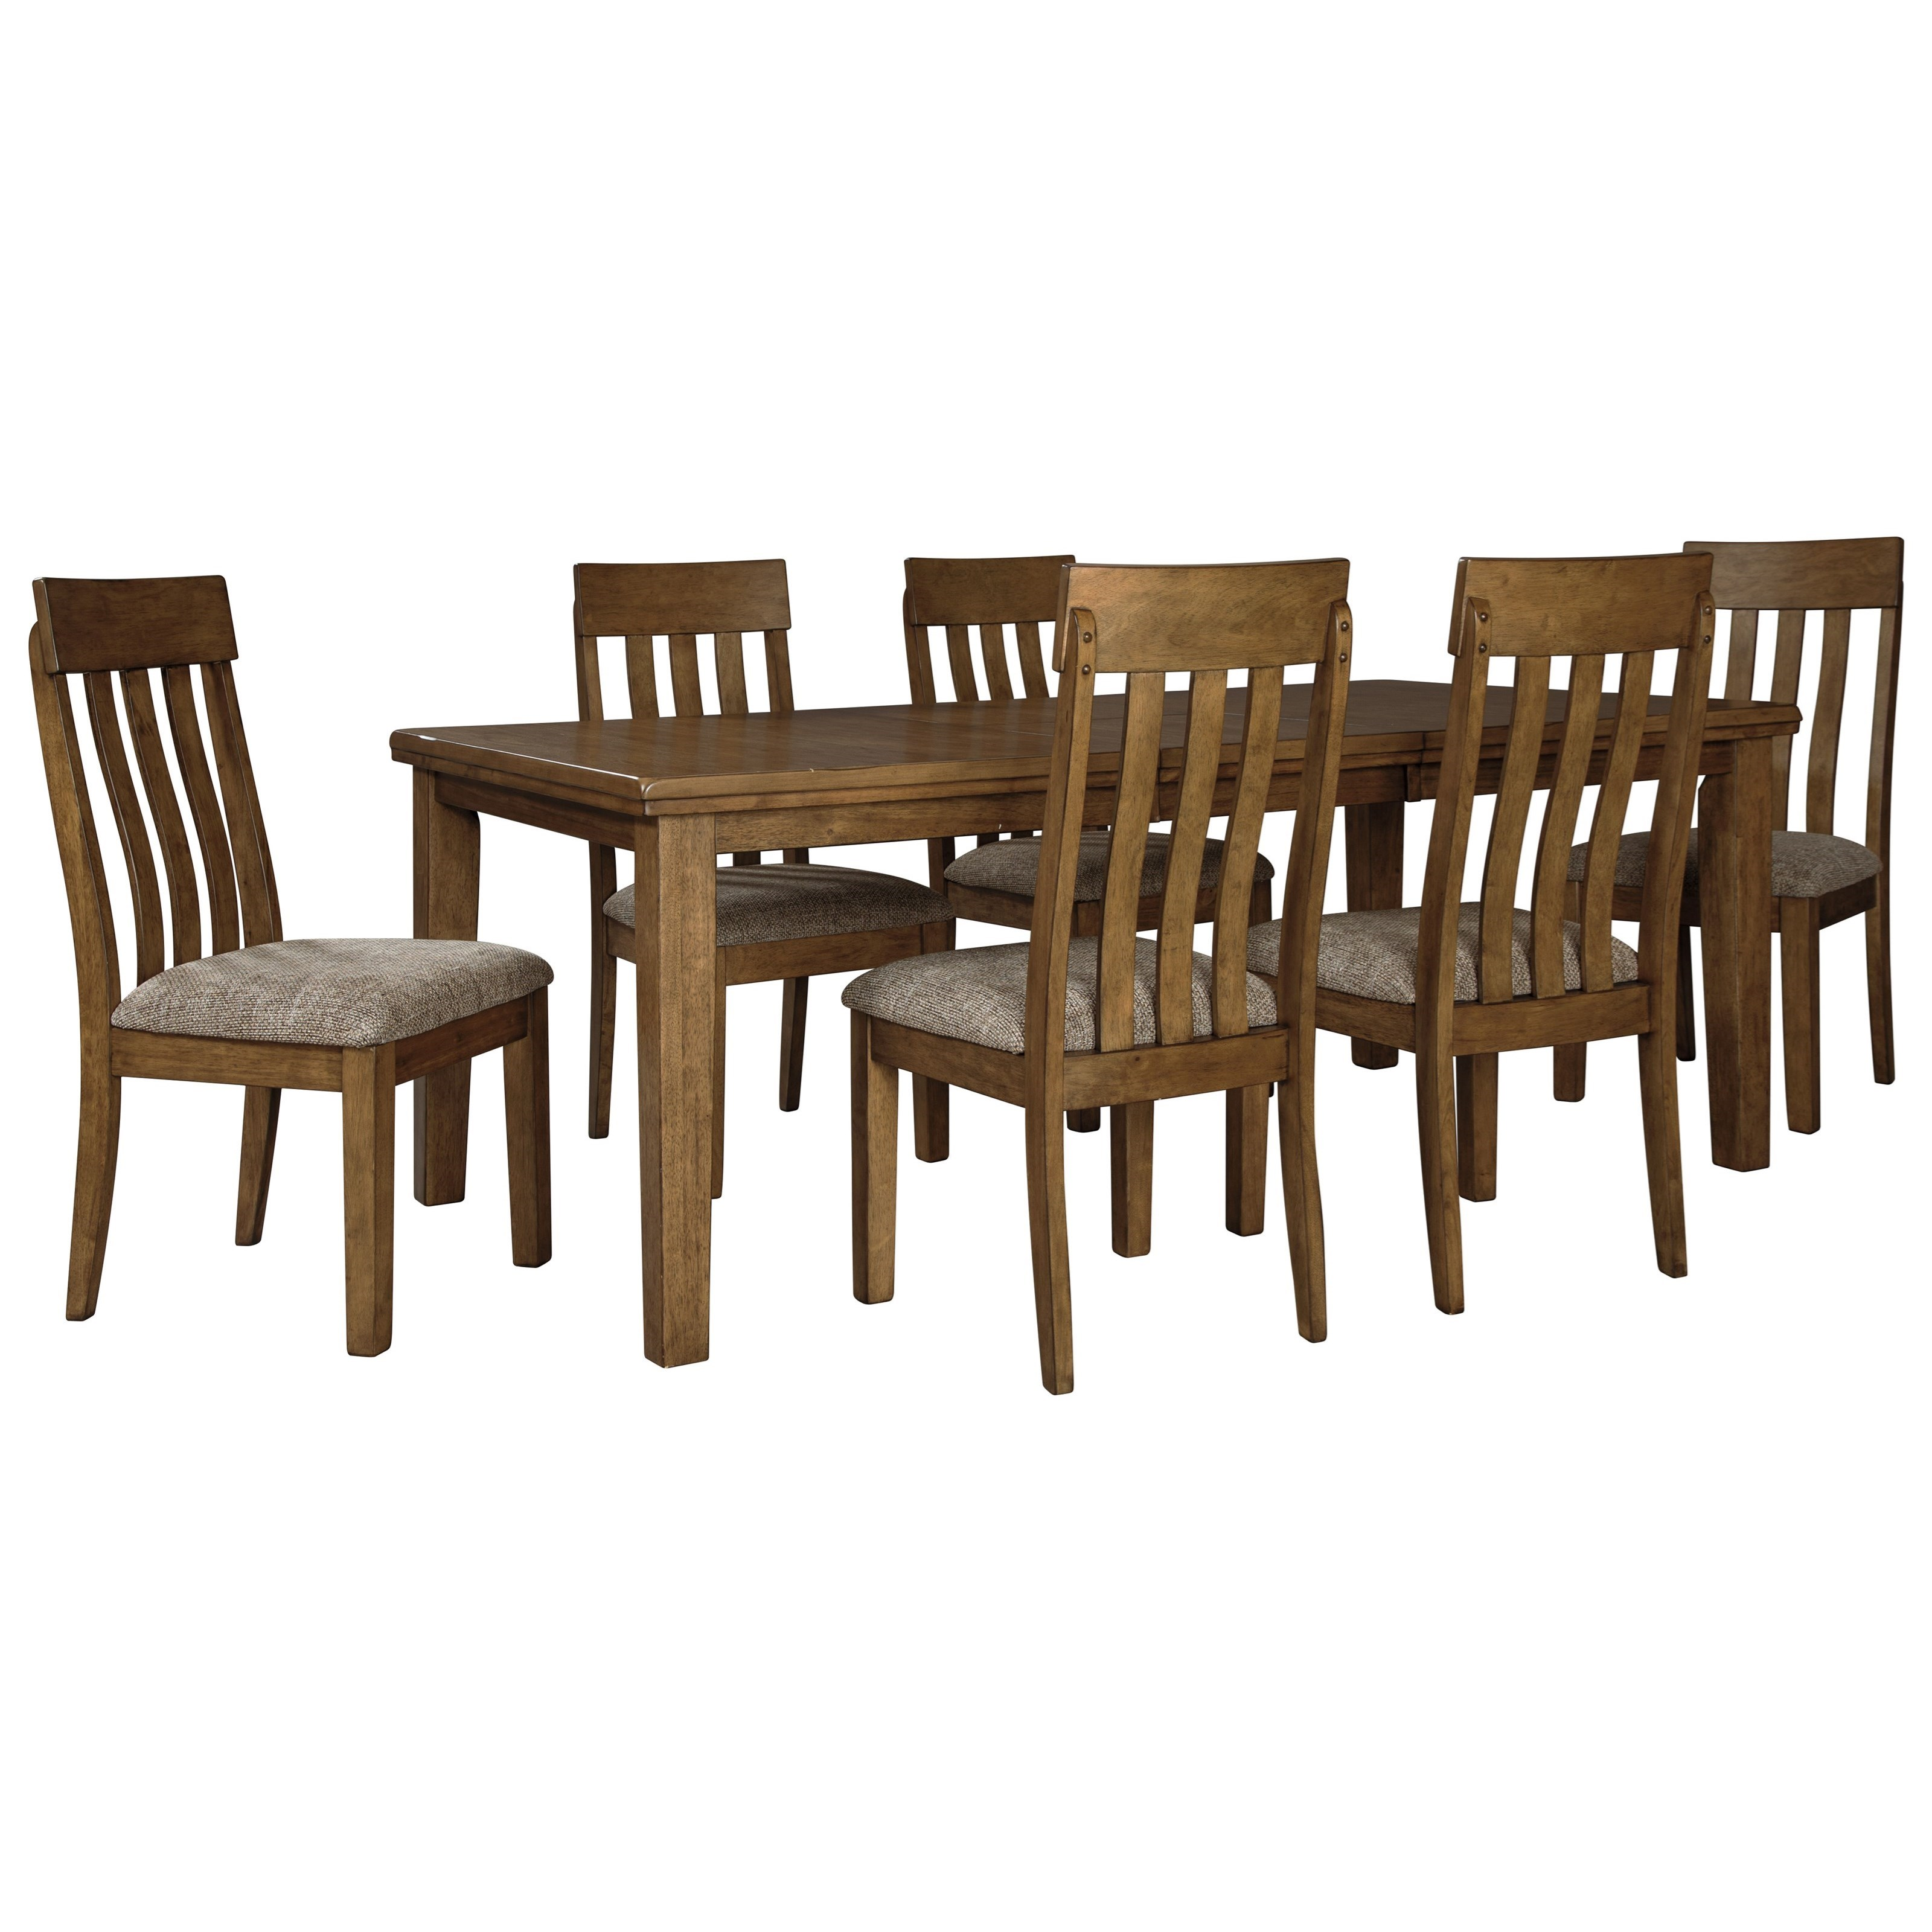 Flaybern 7-Piece Table and Chair Set by Benchcraft at Johnny Janosik